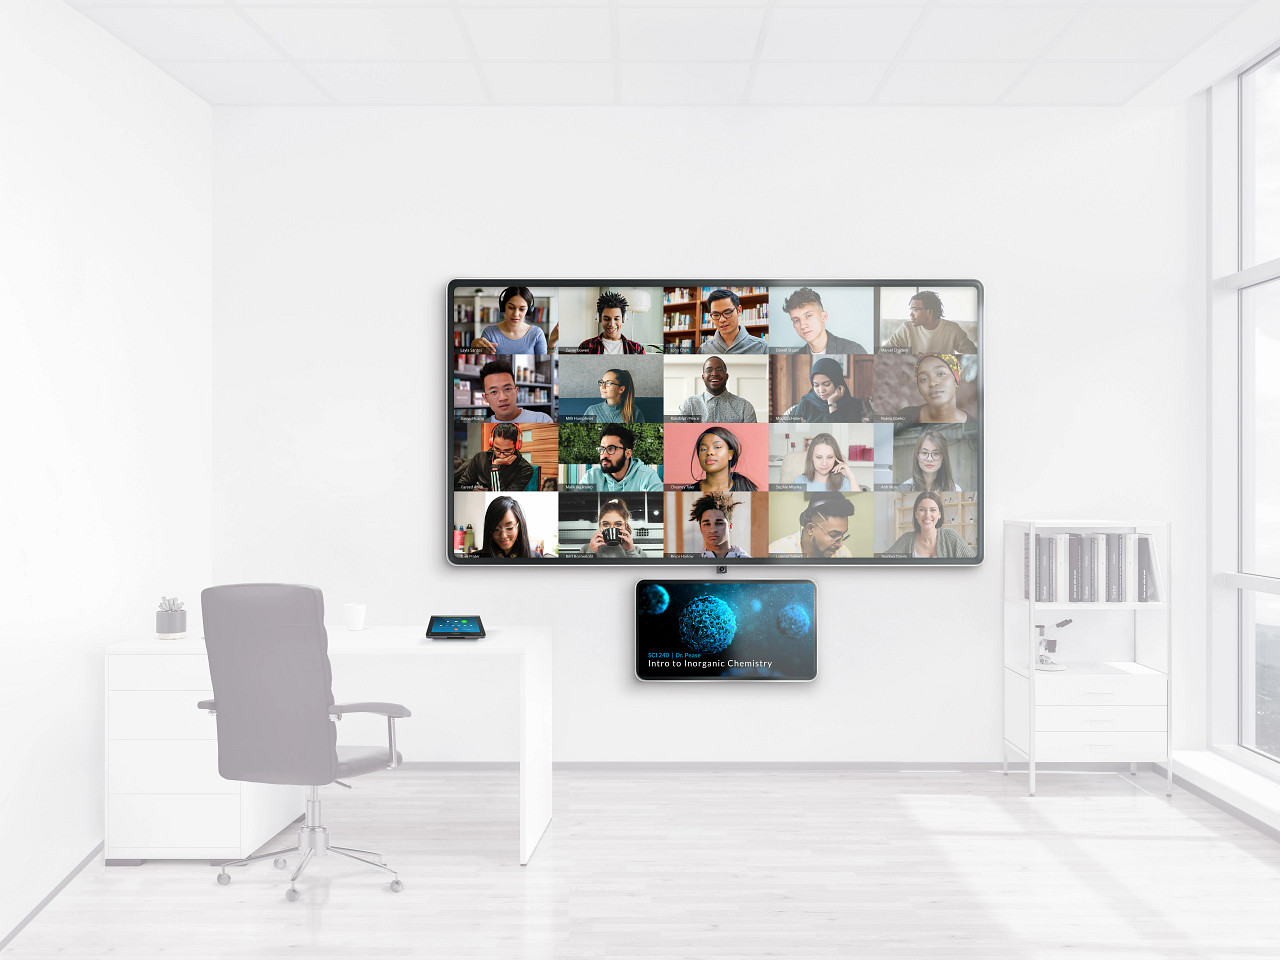 video conferencing in a classroom